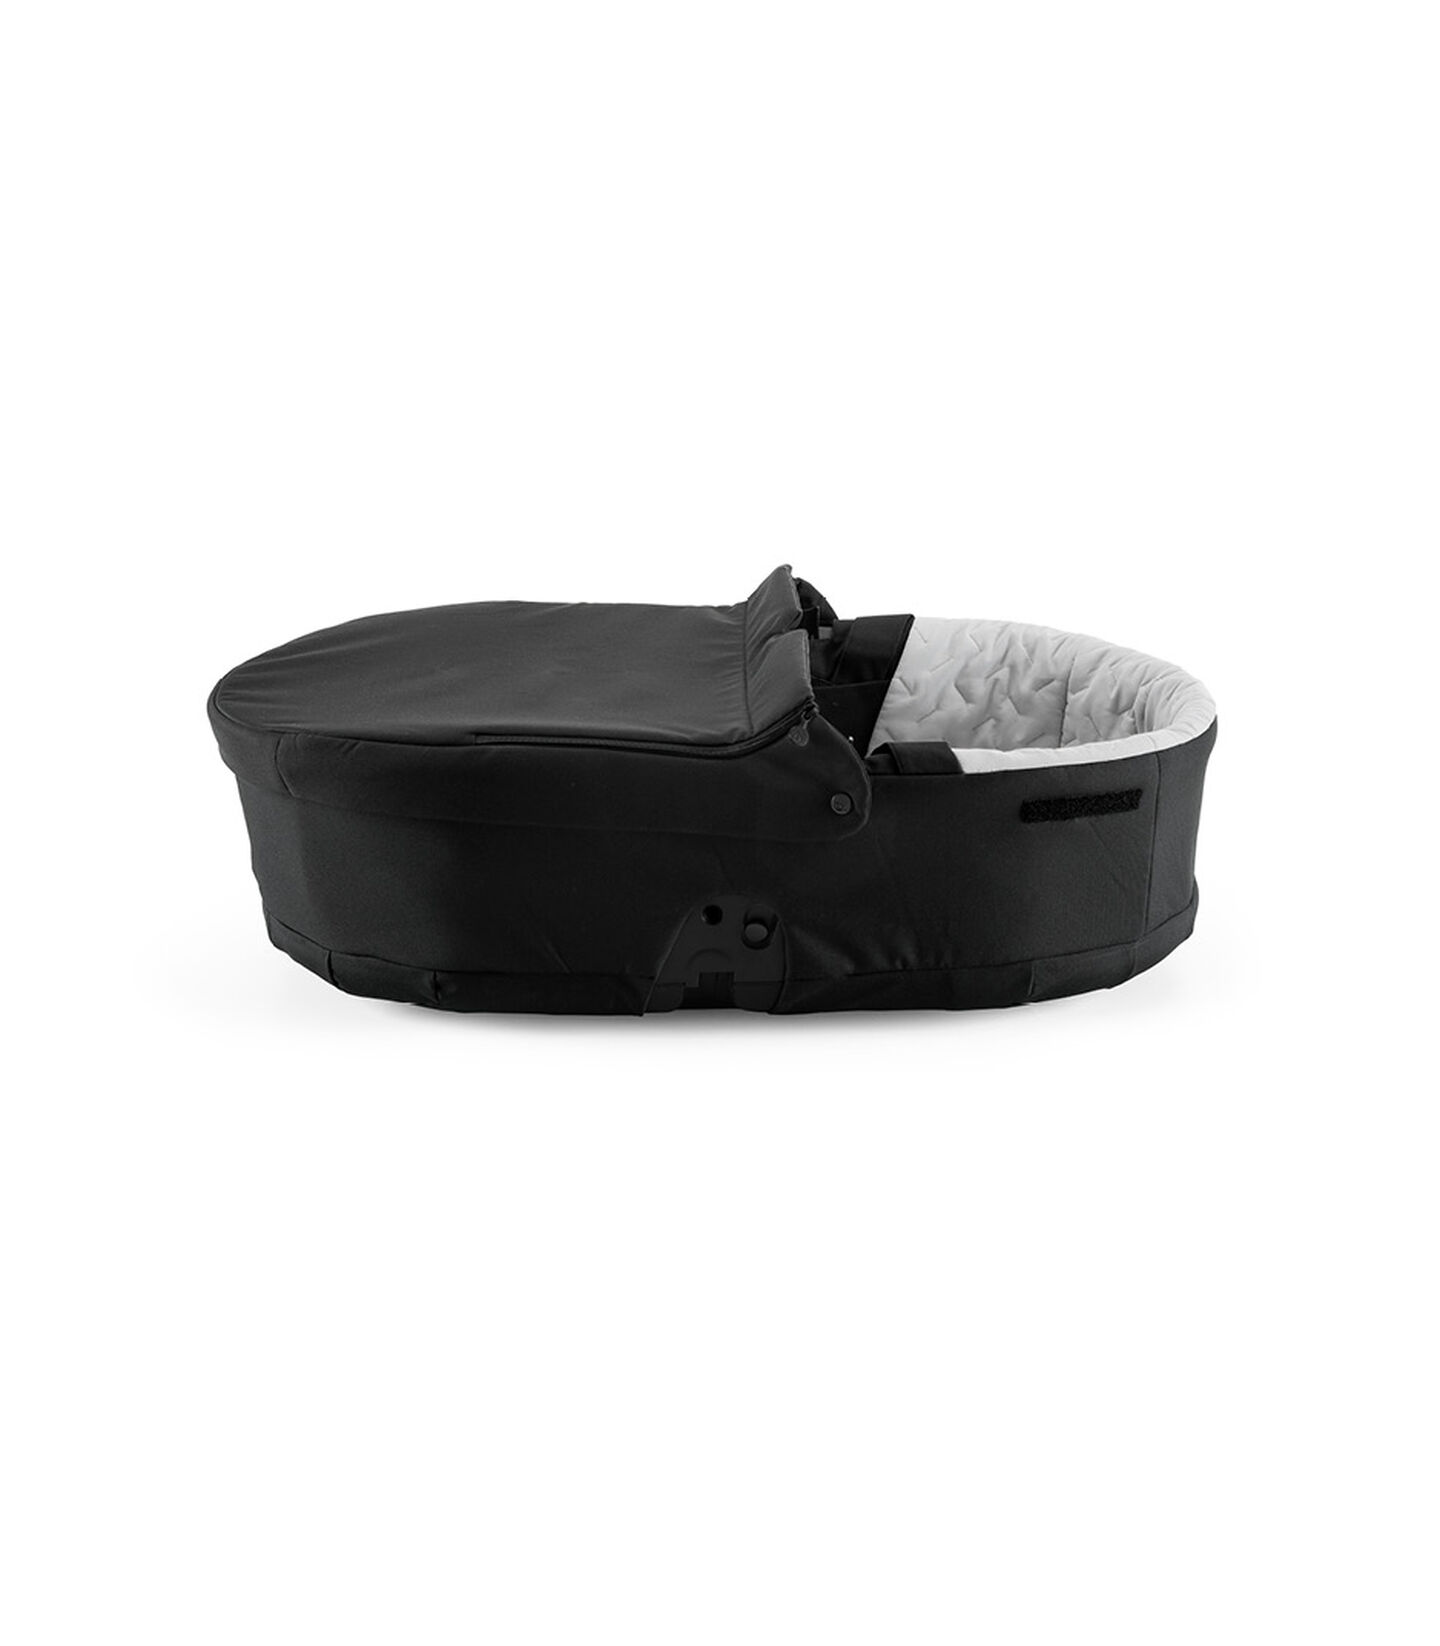 Stokke® Beat Carry Cot Black, Negro, mainview view 2